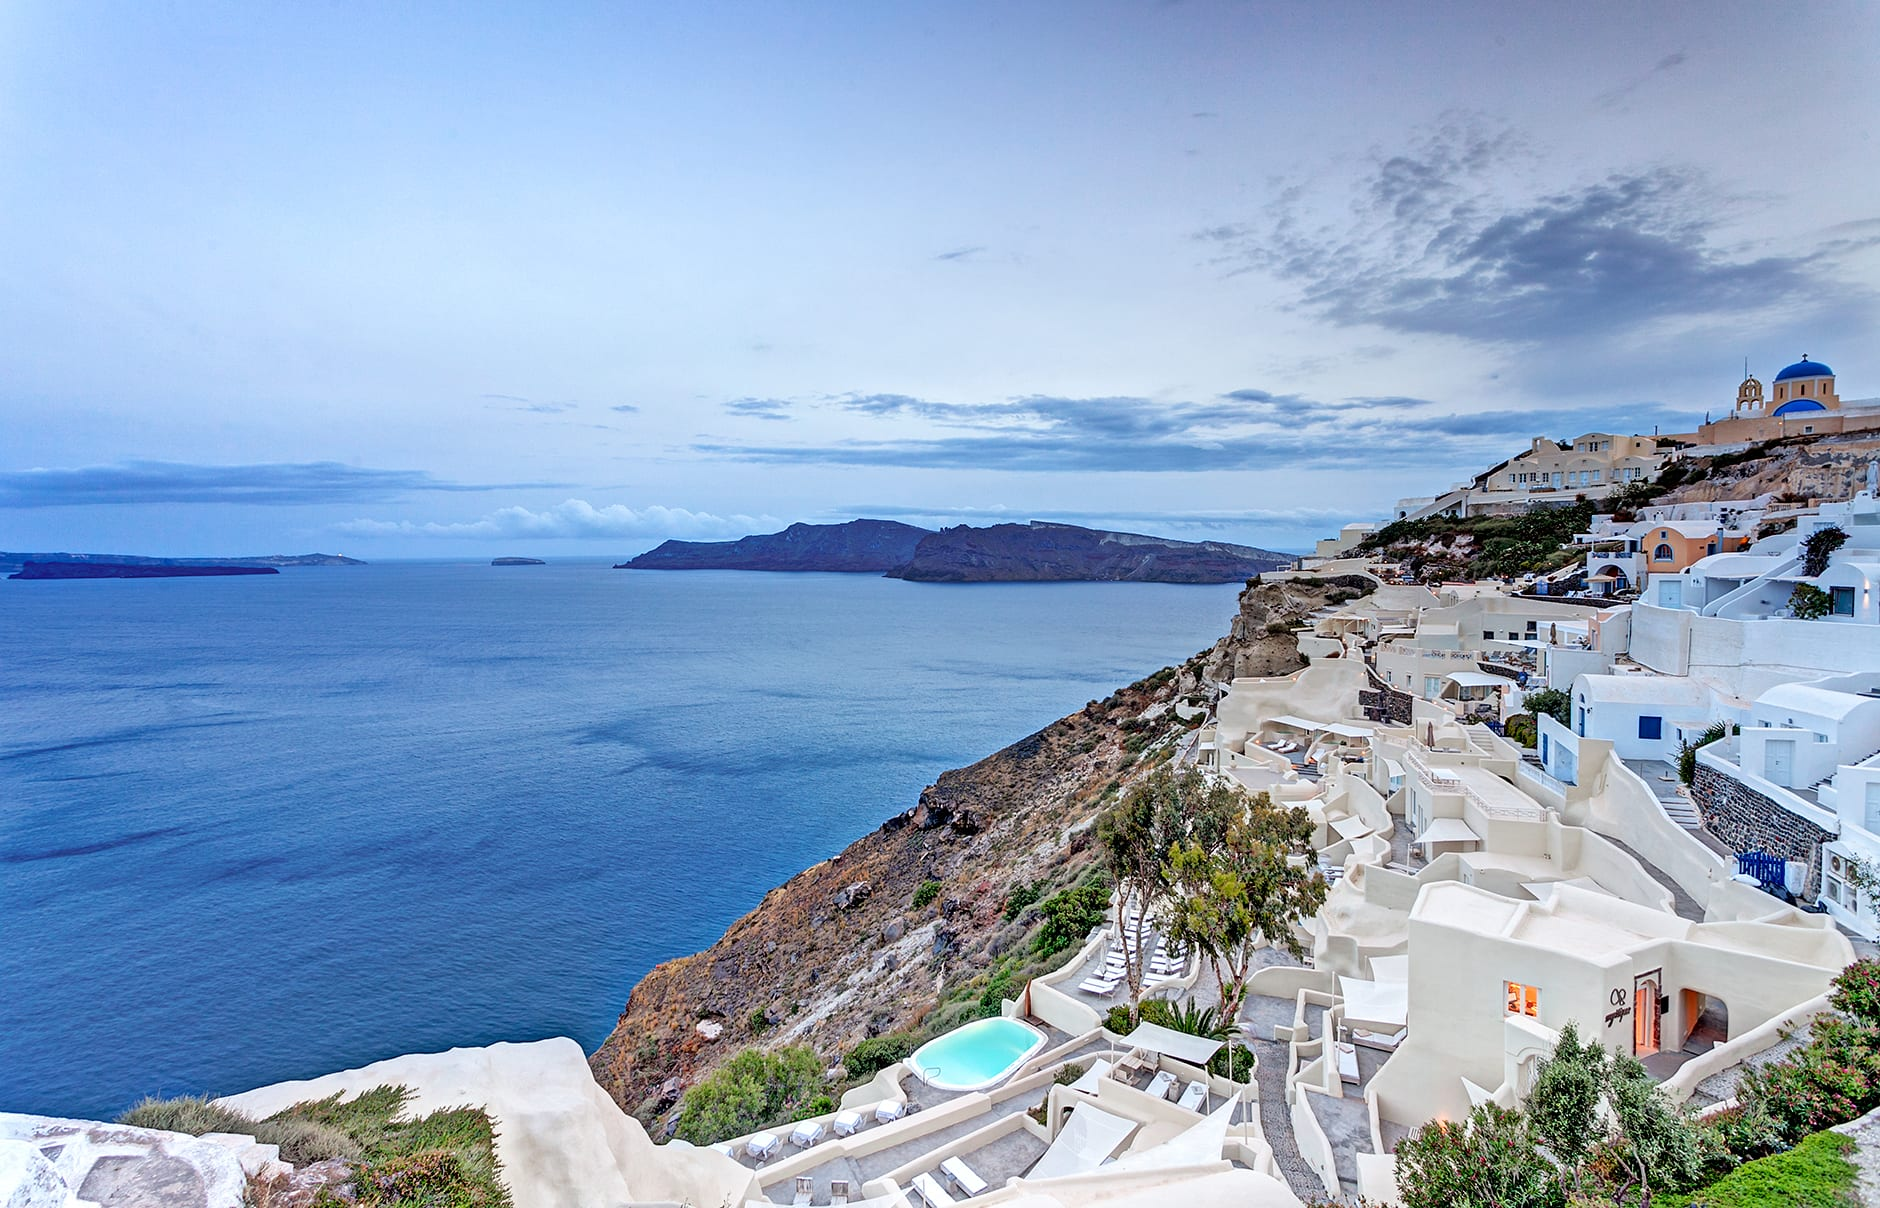 Mystique, Santorini. © Mystique Resort Santorini, Greece